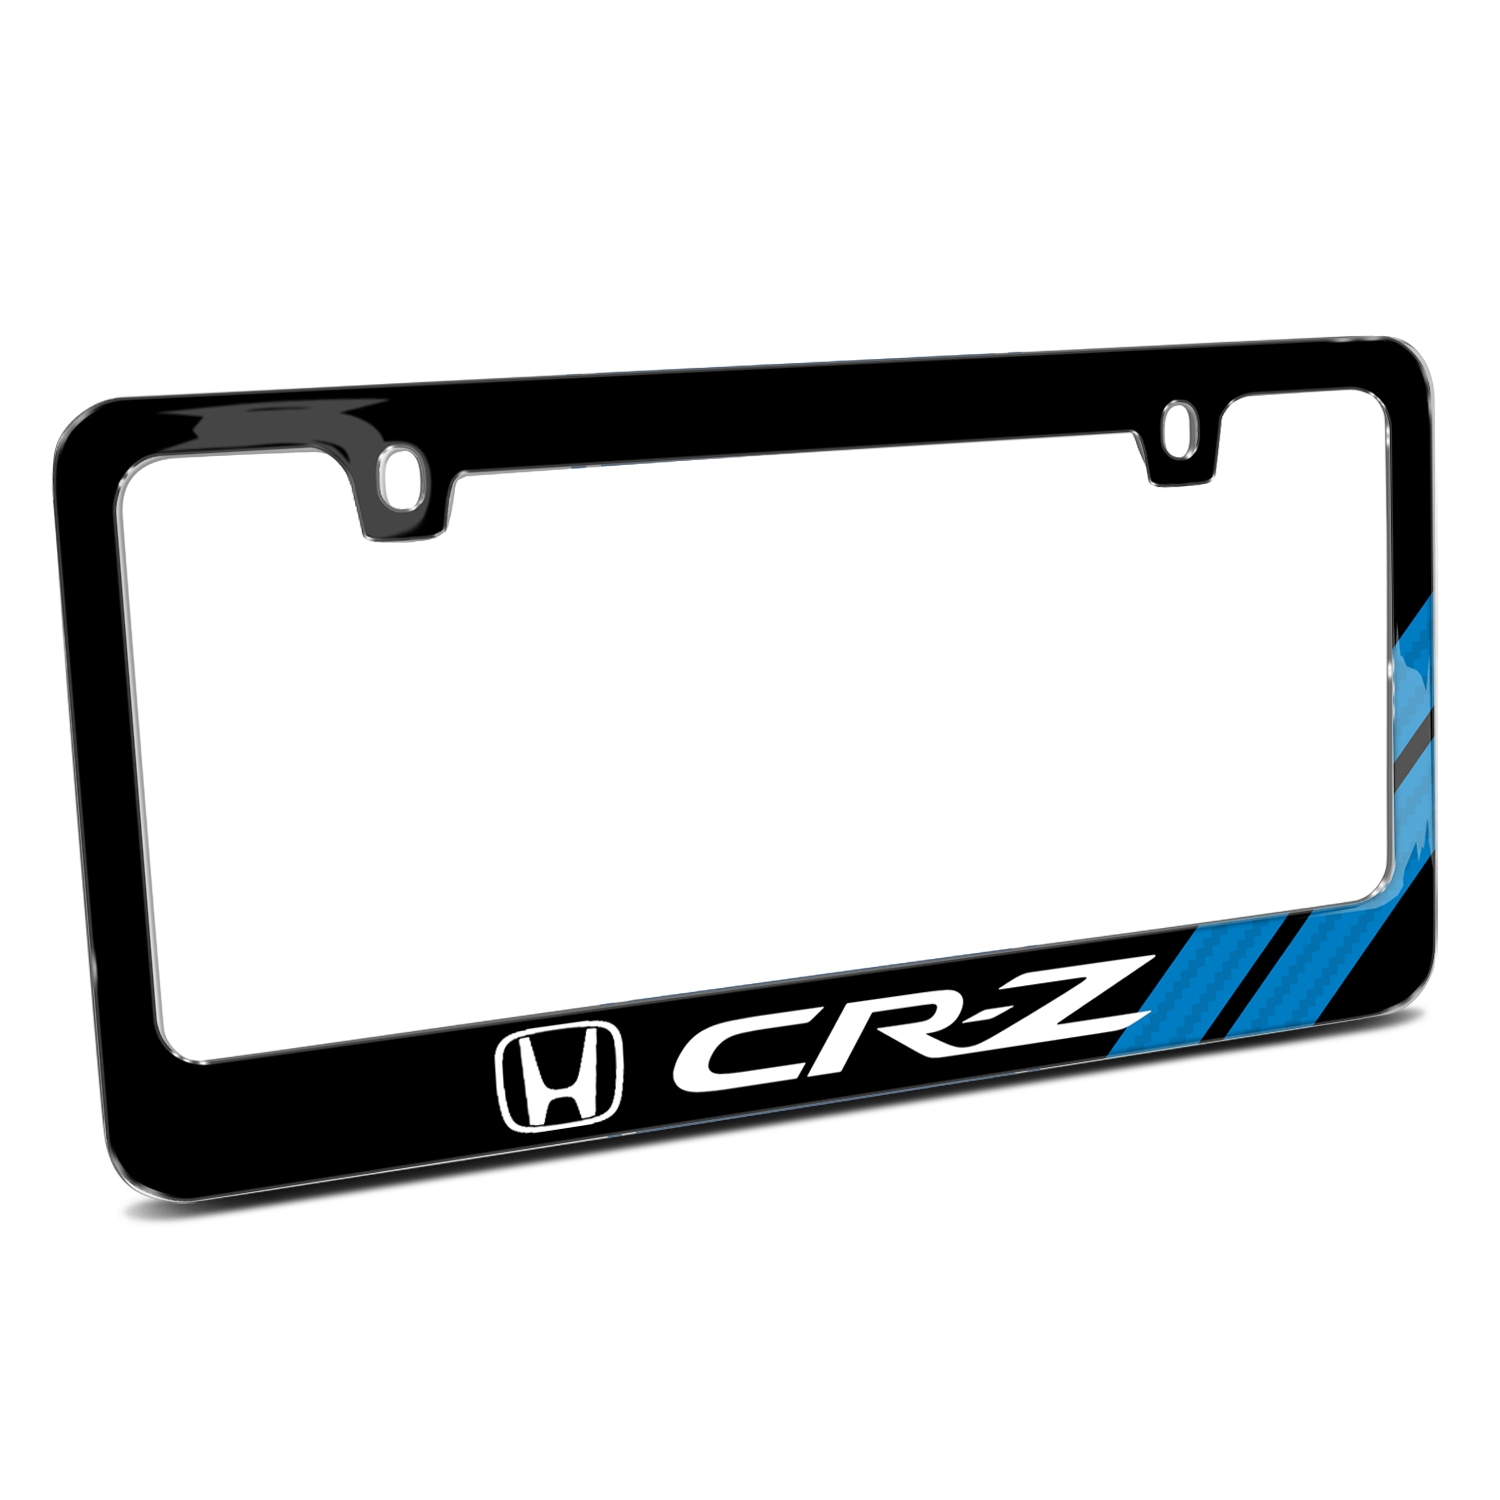 Honda CR-Z Blue Carbon Fiber Texture Stripe Black Metal License Plate Frame